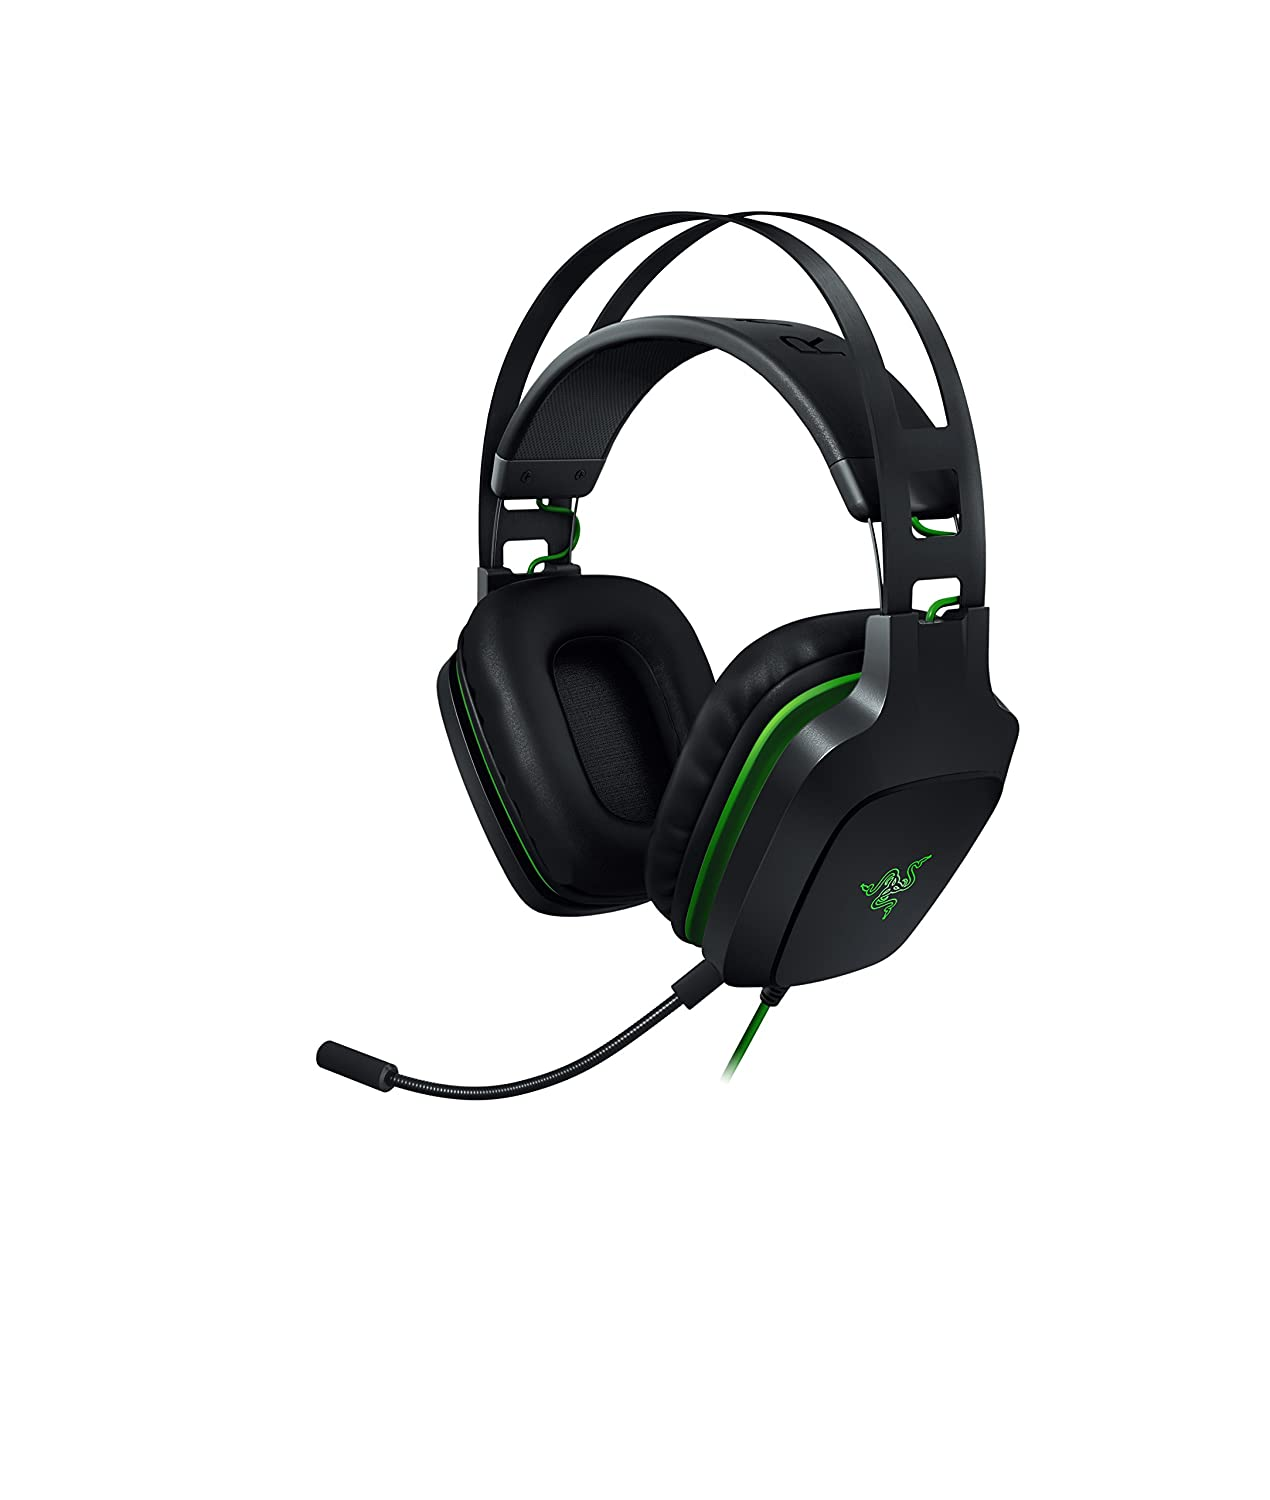 Razer Electra V2: 7.1 Surround Sound - Auto Adjusting Headband - Detachable Boom Mic with in-Line Controls - Gaming Headset Works with PC, PS4, Xbox One, Switch, Mobile Devices Razer Inc. RZ04-02210100-R3M1